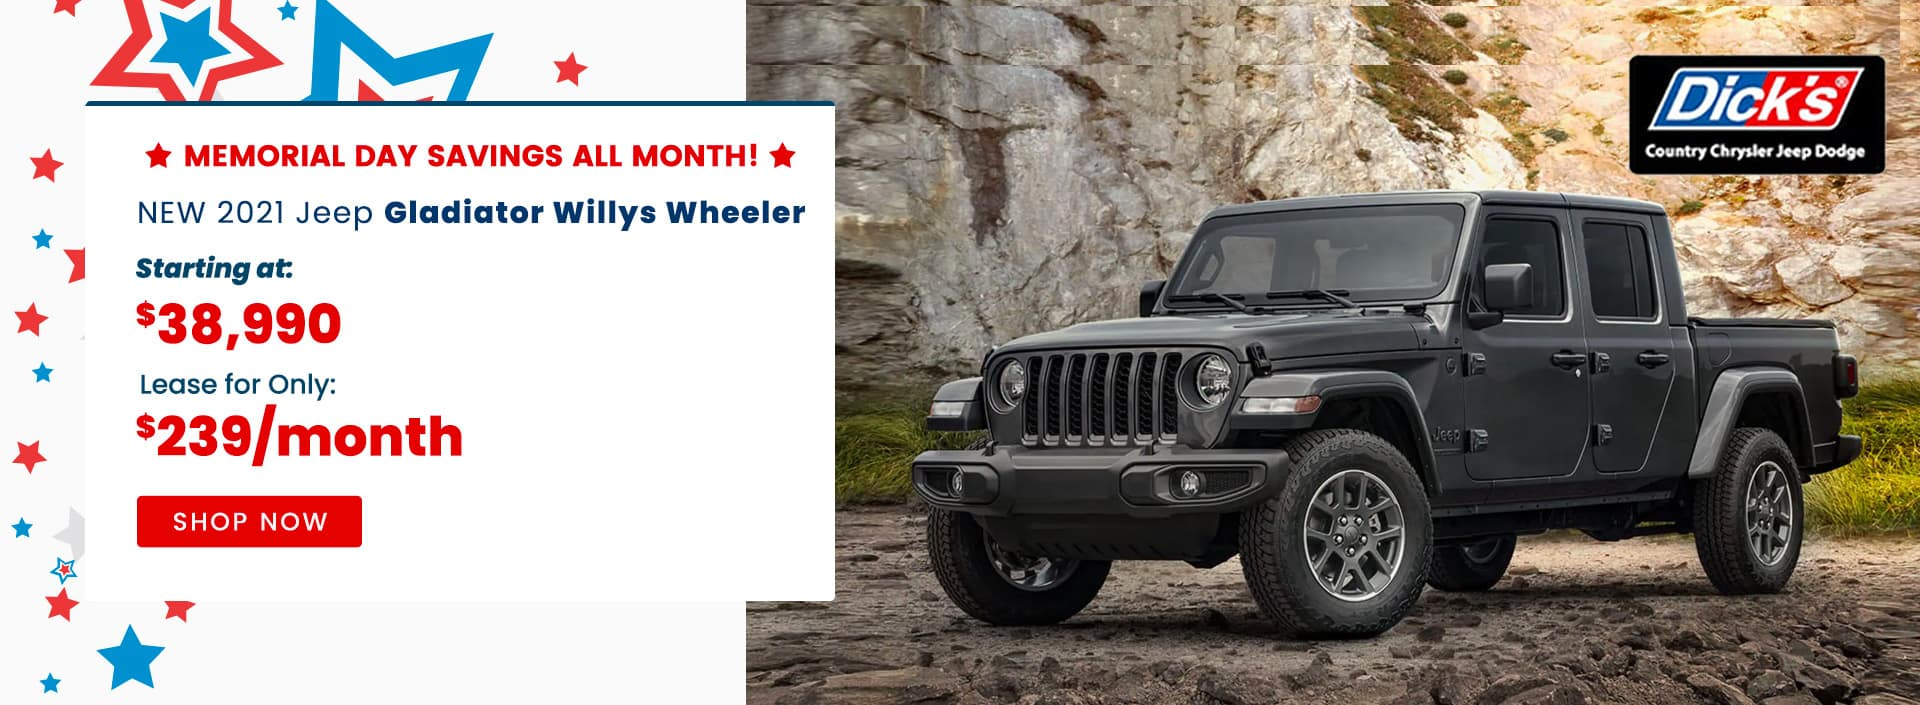 Jeep Gladiator Willys Wheeler Starting at $38,990 Lease for only $239/month